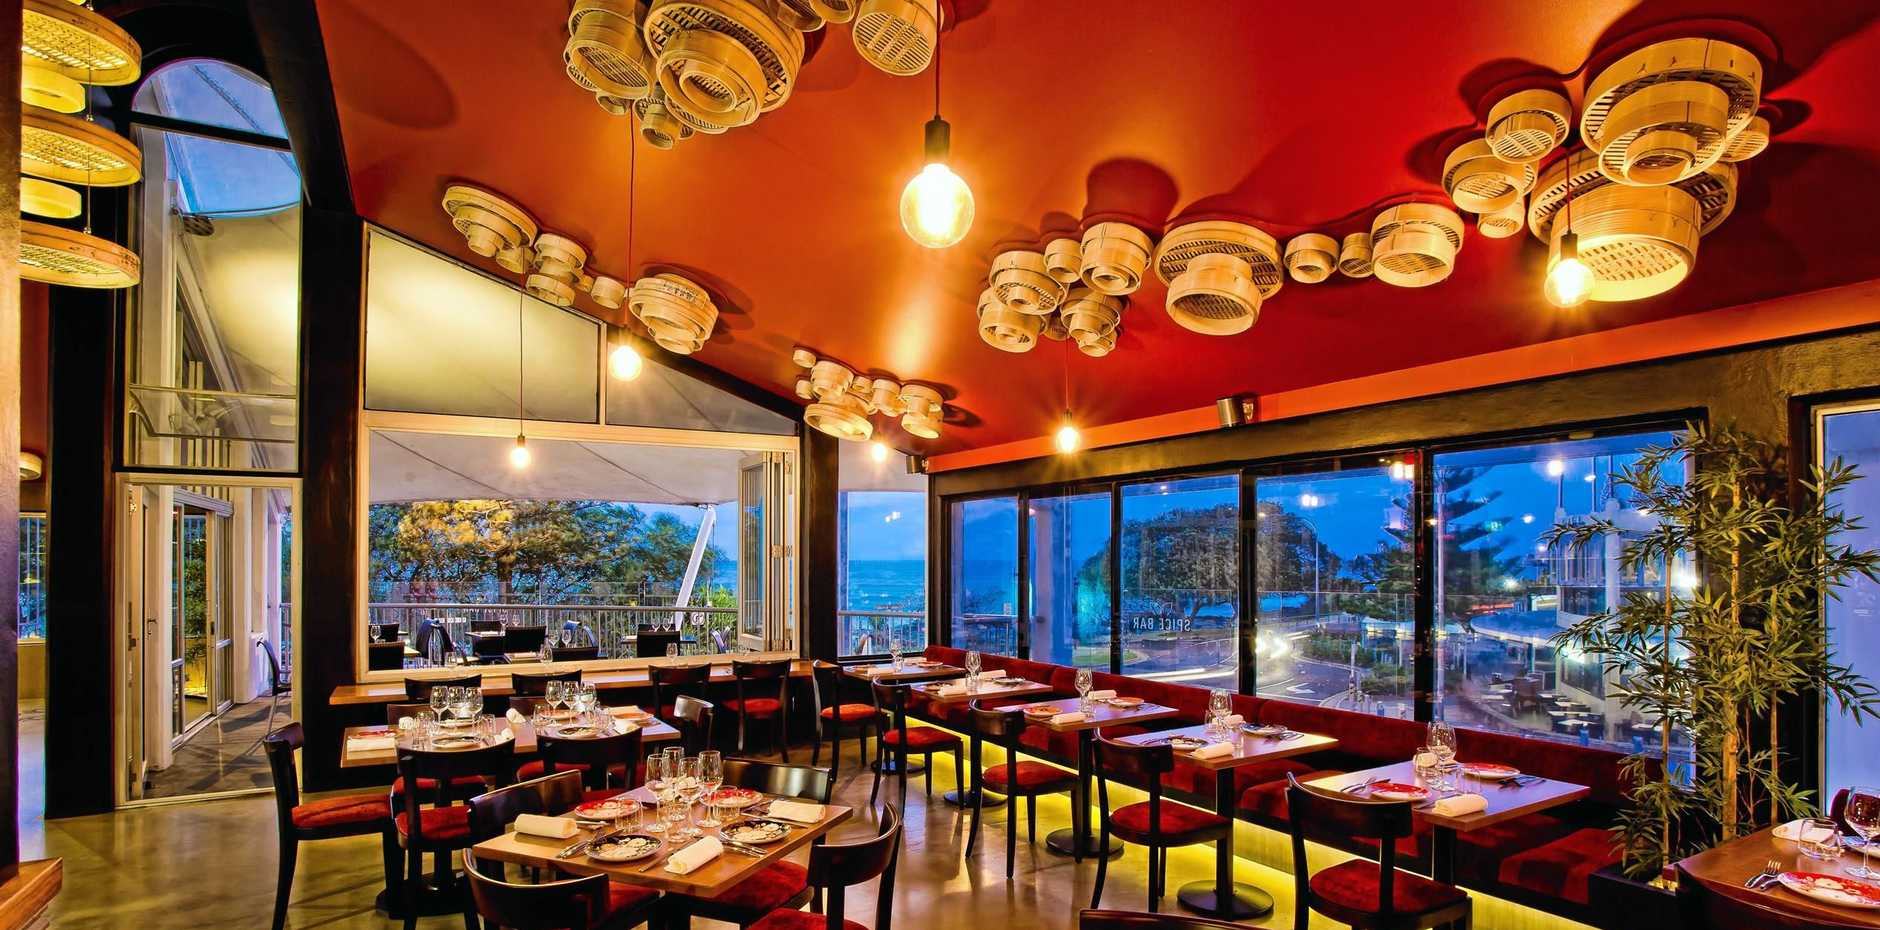 Top 10 Restaurants - Australia